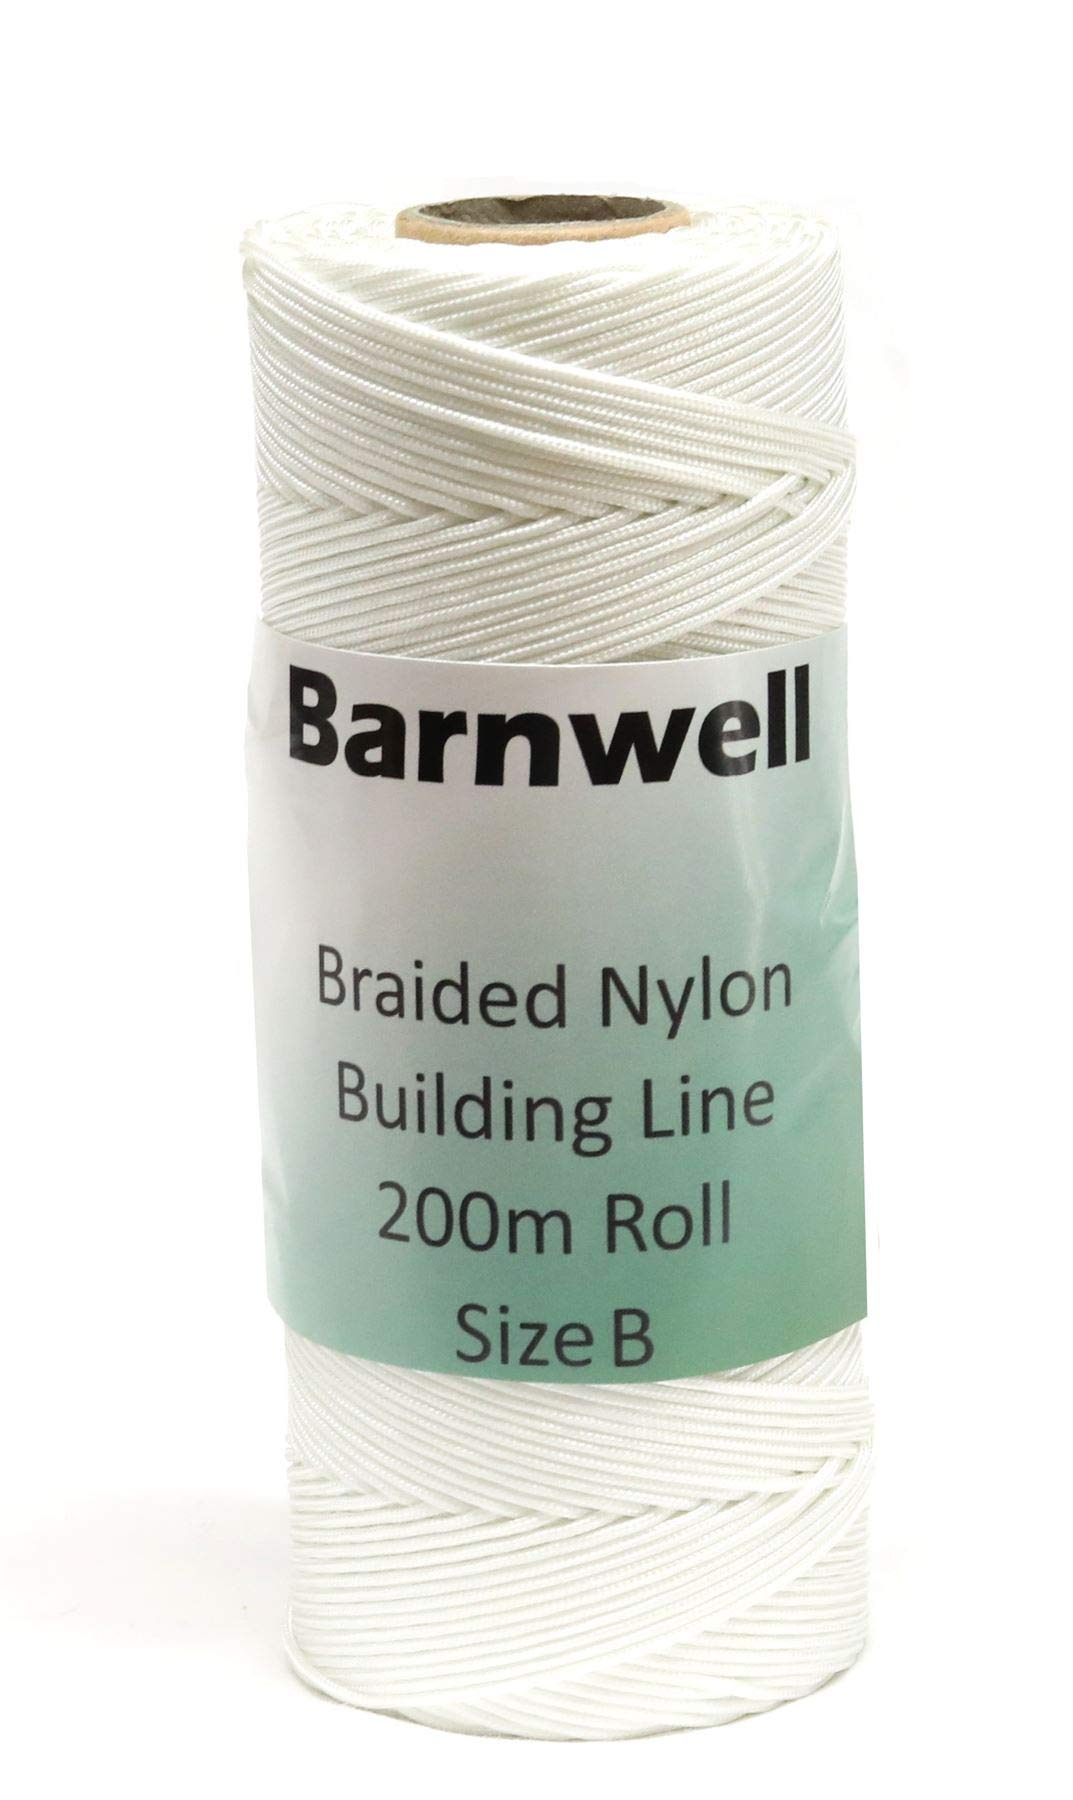 Barnwell Braided Nylon Chalk Brick Building Line Large 200m (656ft) Roll Size B Thicker by Barnwell